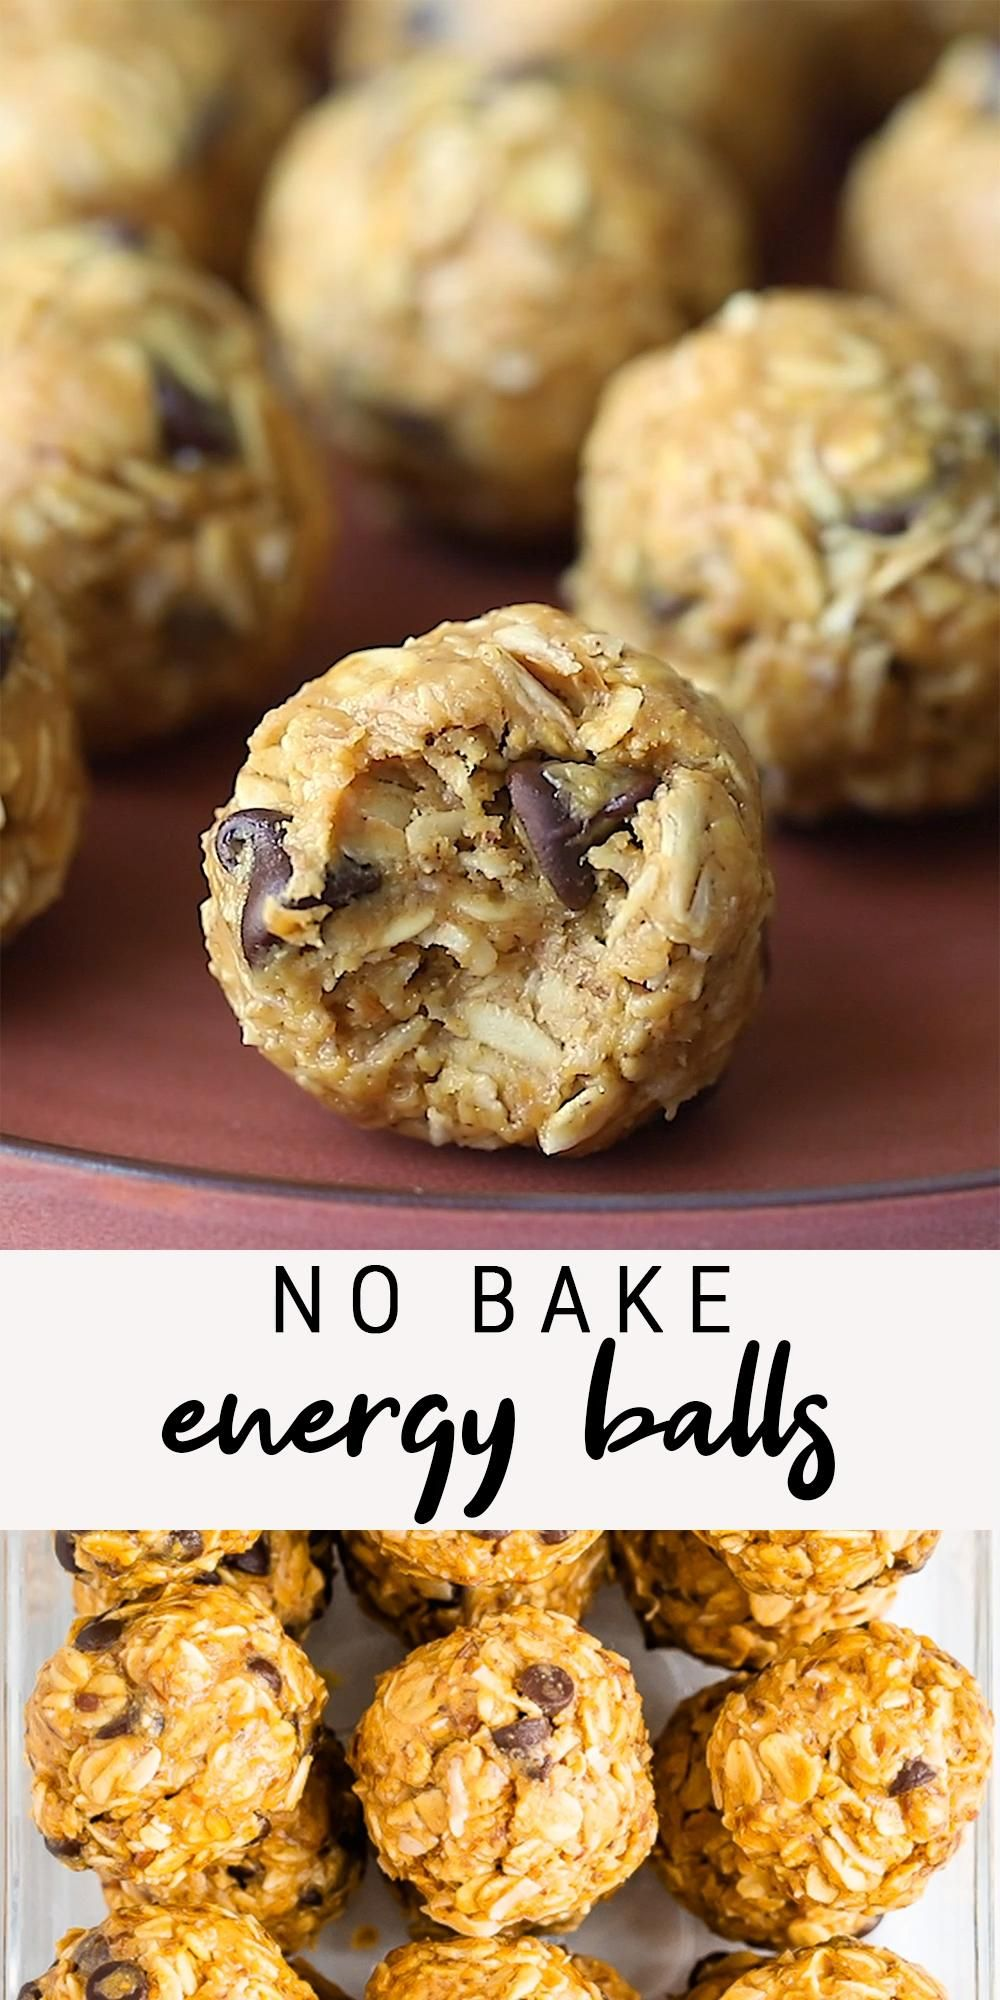 Healthy No Bake Peanut Butter Energy Balls | Choco